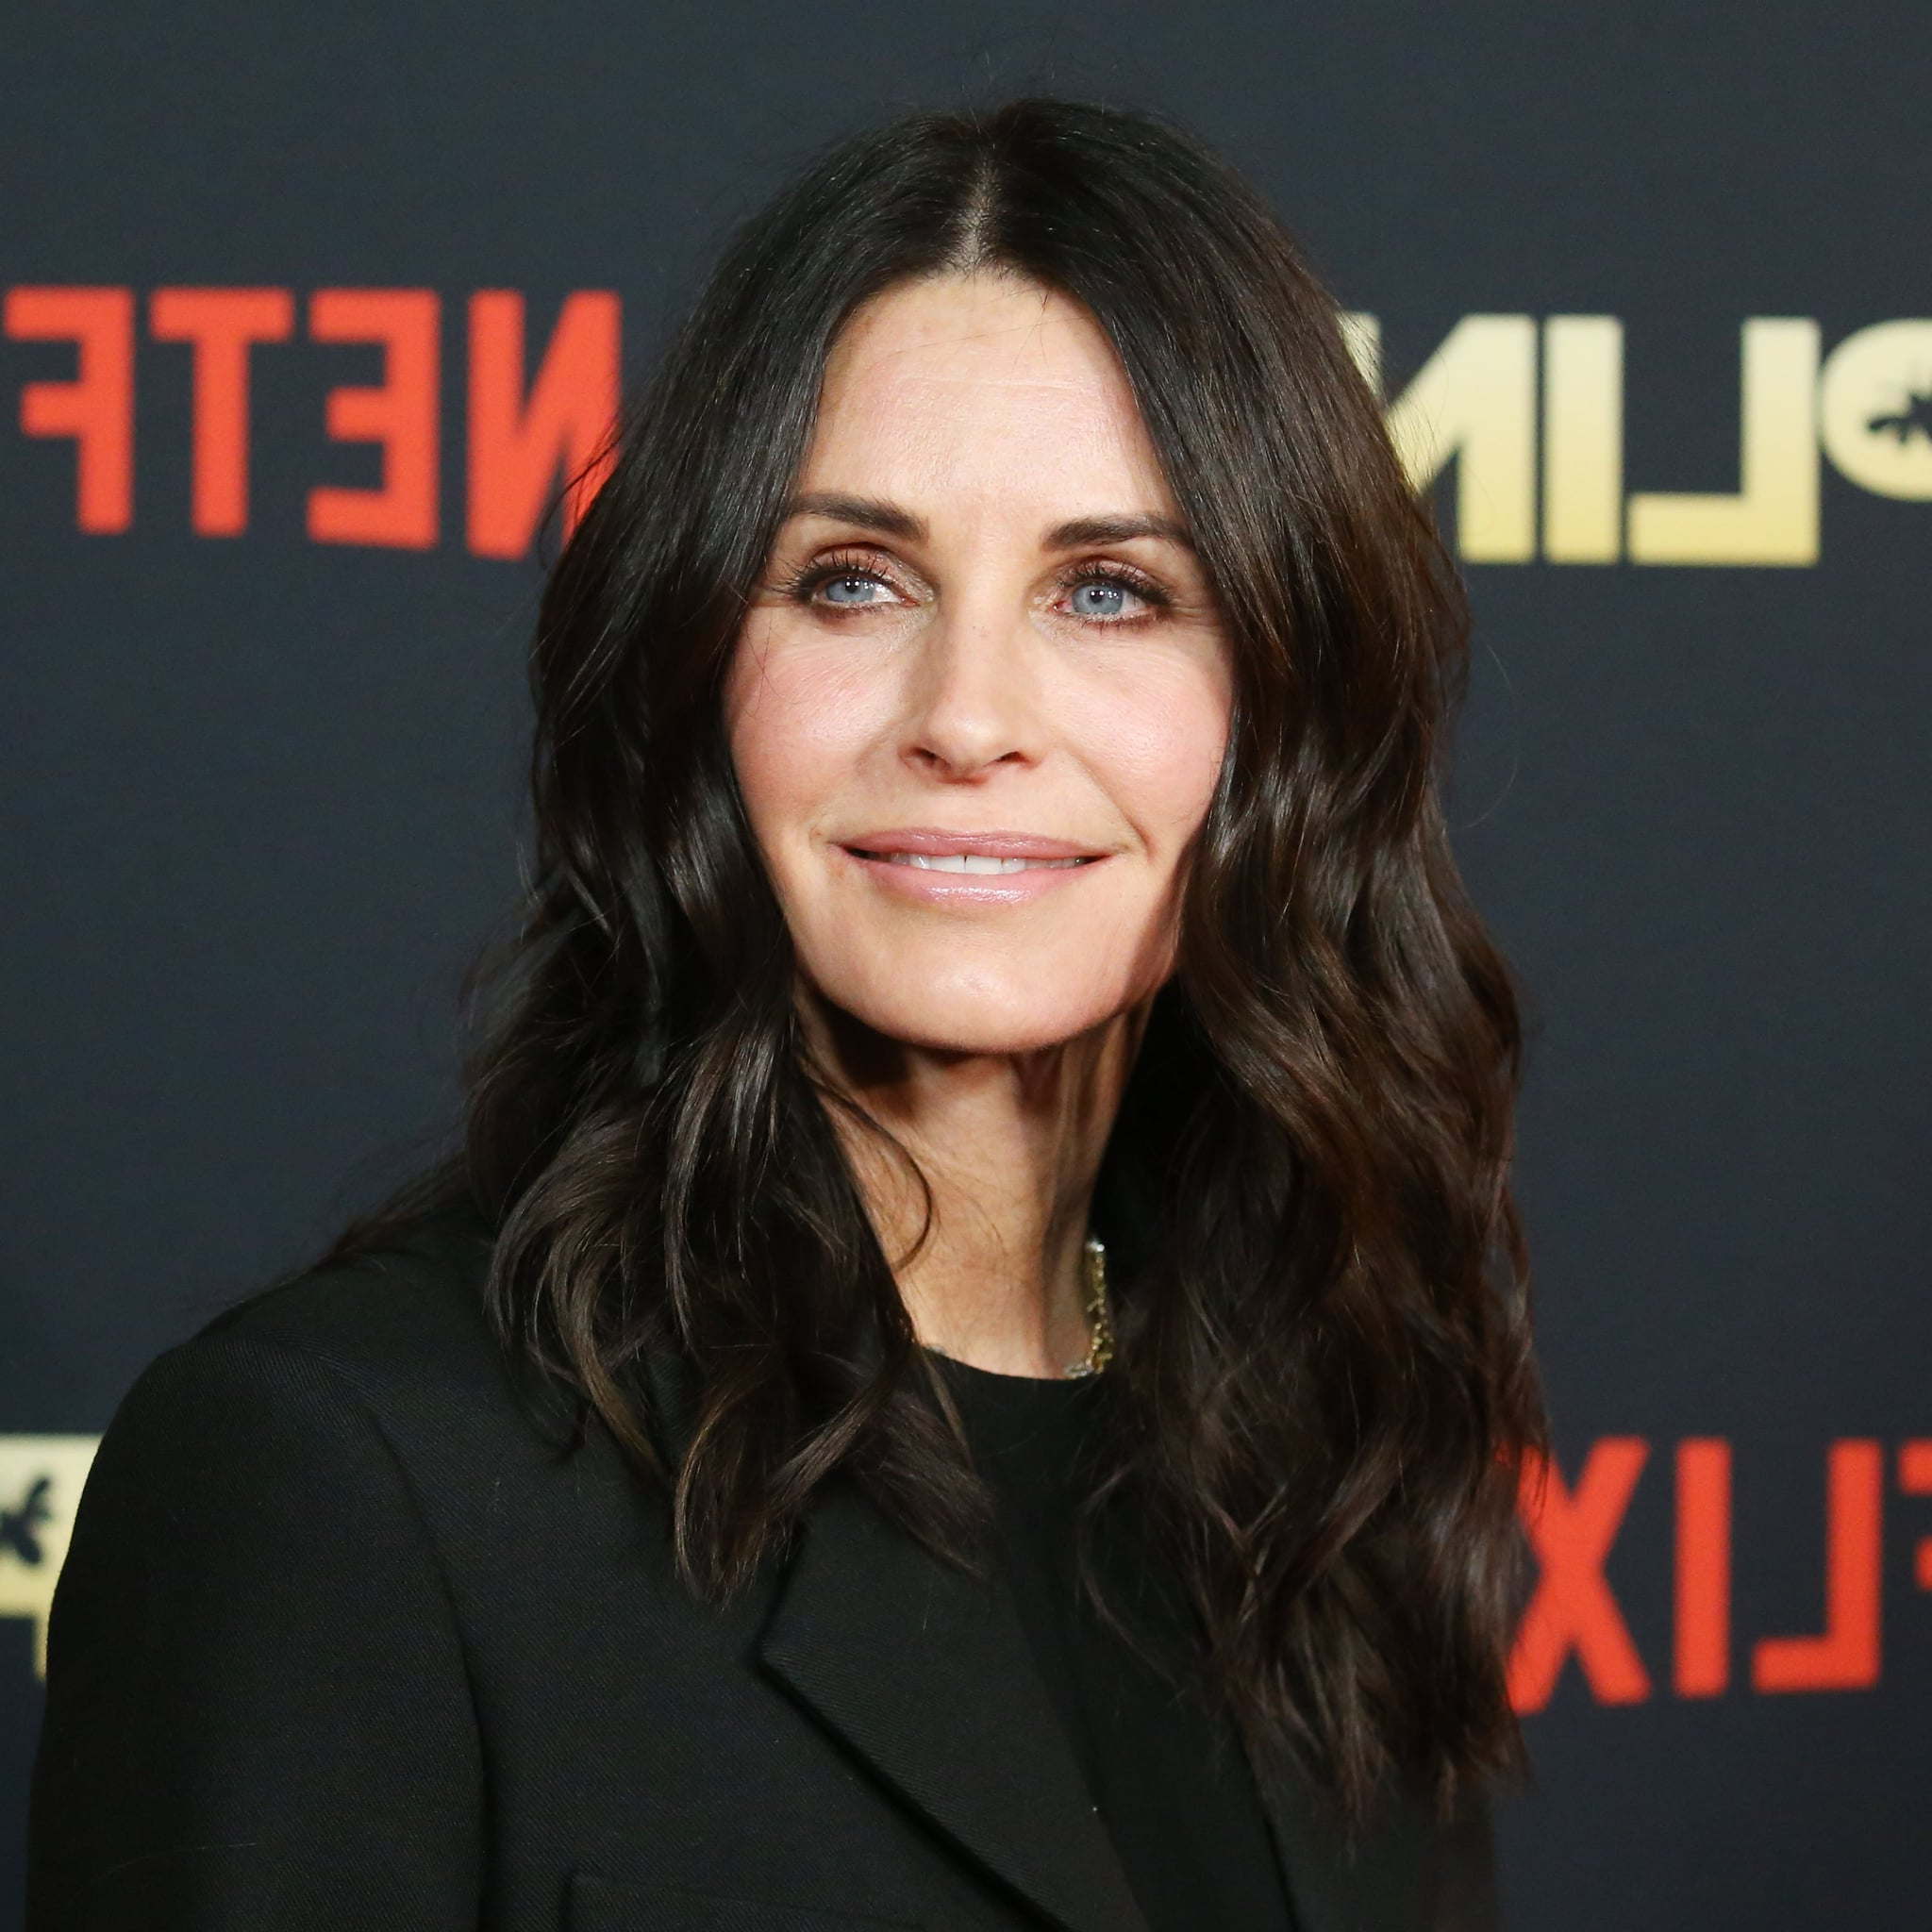 Courteney Cox Got A Lob Haircut With Bangs For Fall Pertaining To Curls Of Tinsel Shag Haircuts (View 18 of 20)